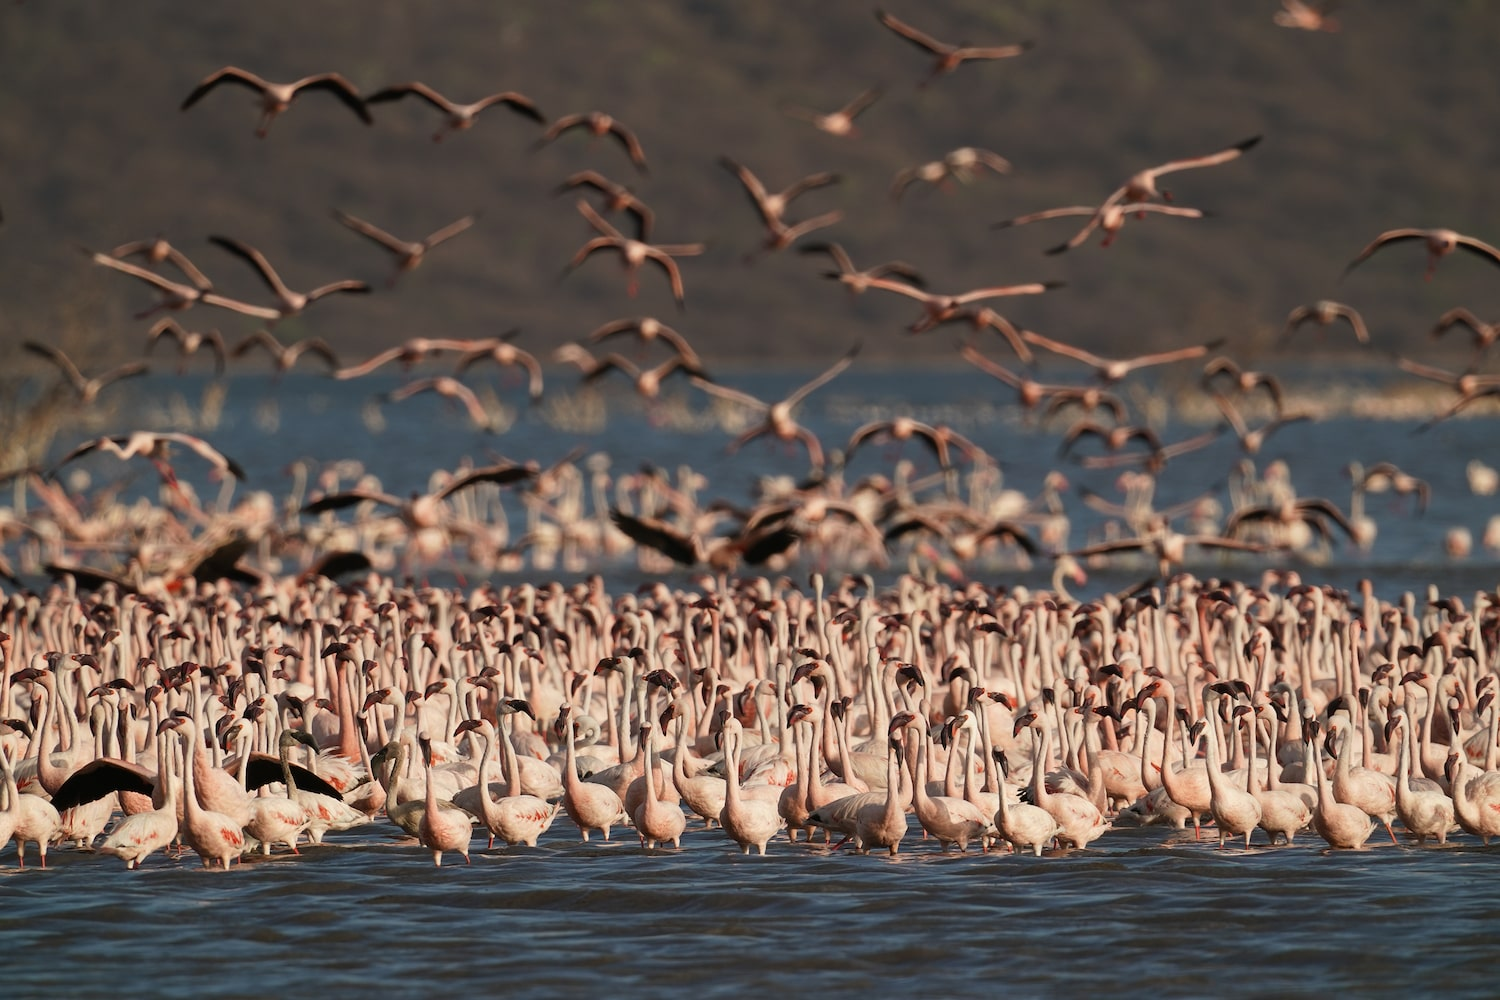 flock-of-flamingos-in-lake-in-the-golden-hour-alpha-7III